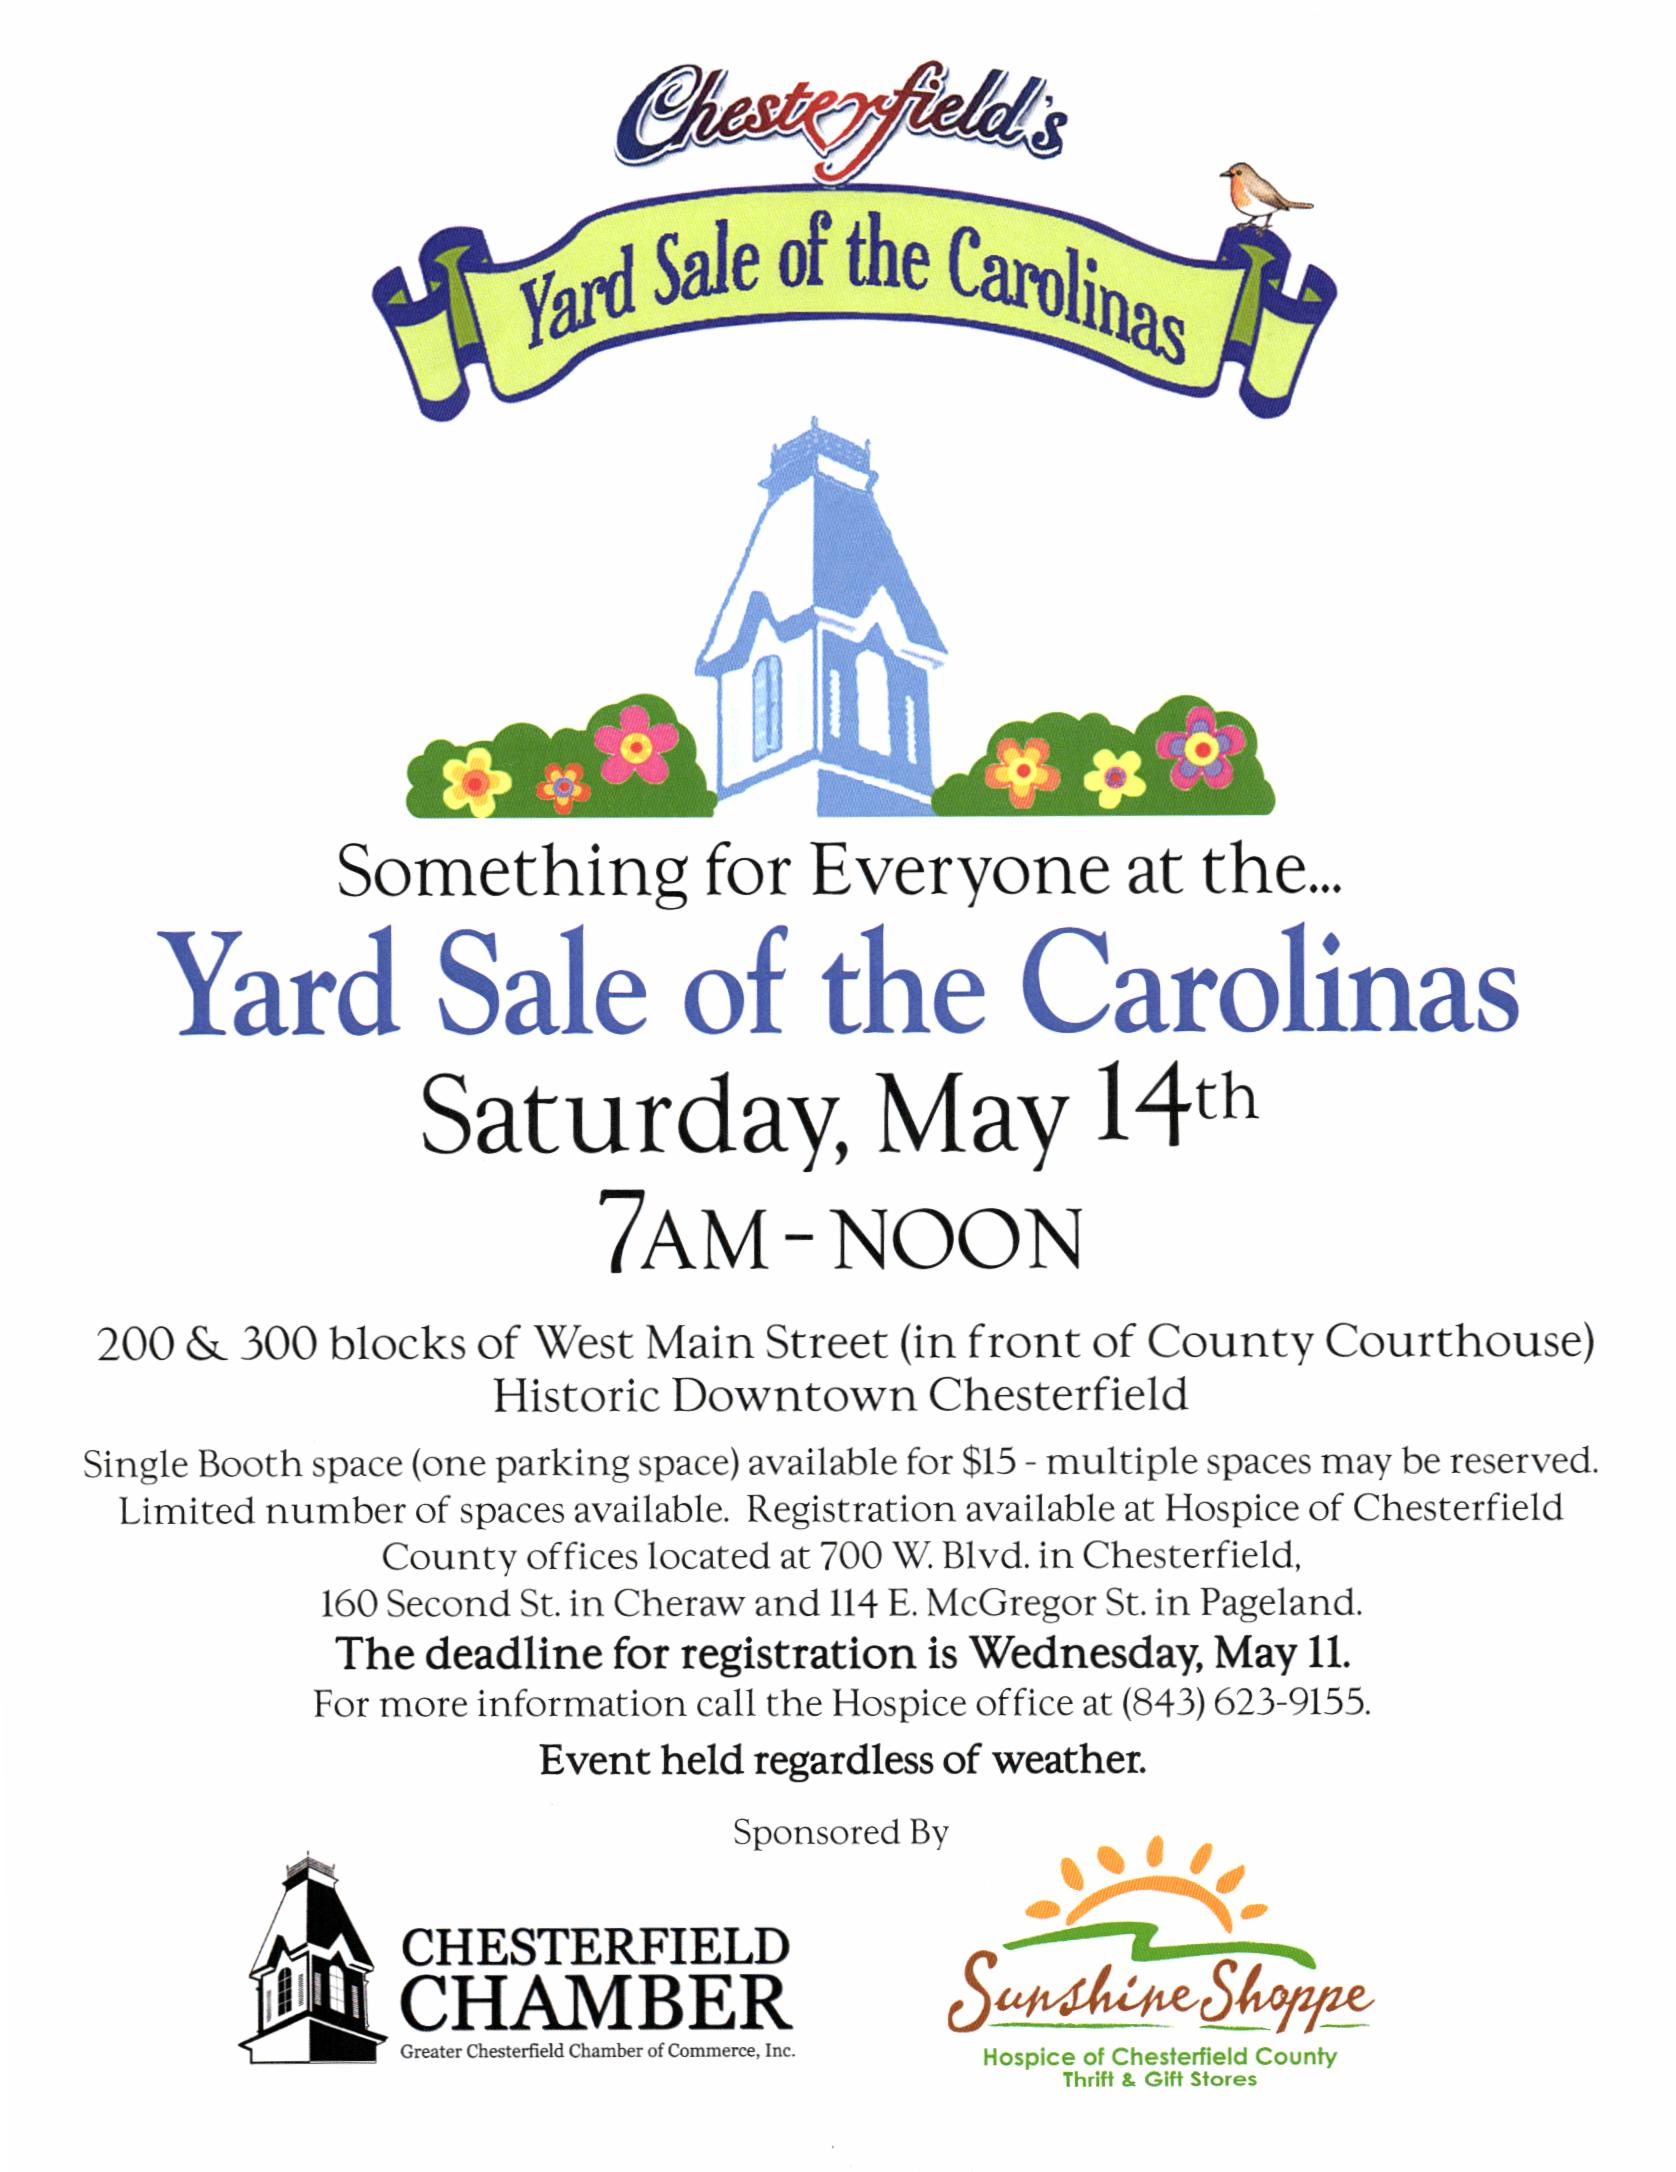 Yard Sale of the Carolinas